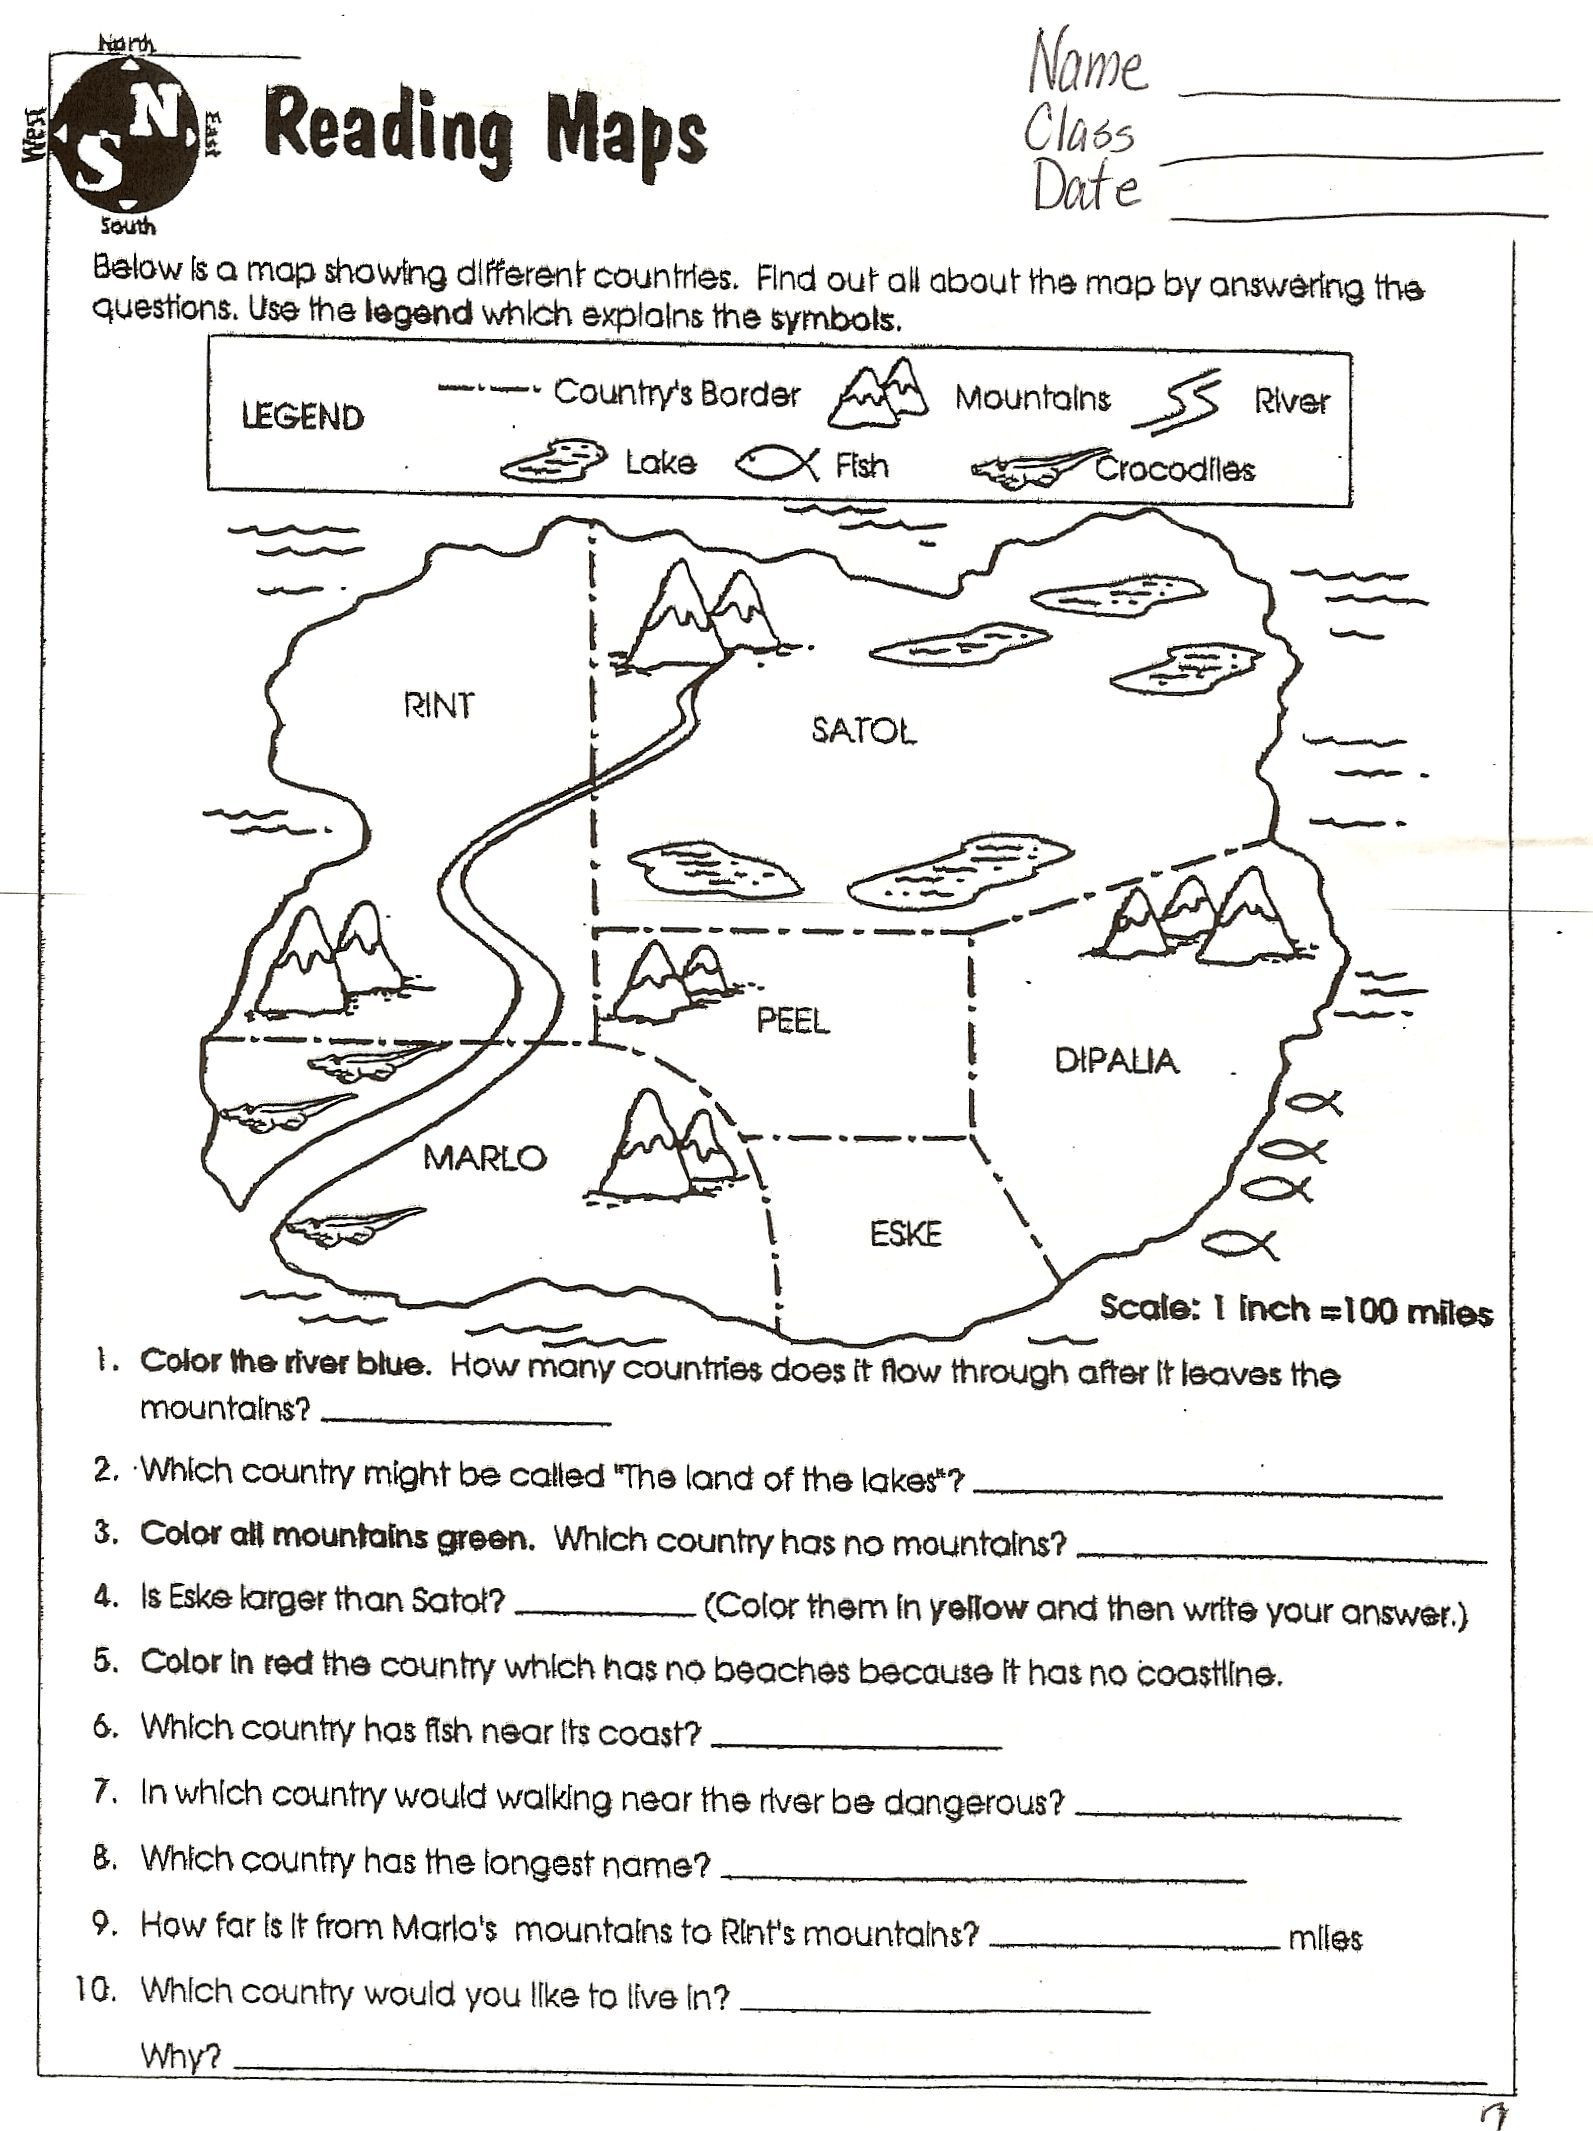 Measurement Worksheet 2nd Grade Reading Worksheets Grade 6th social Stu S Measurement 2nd